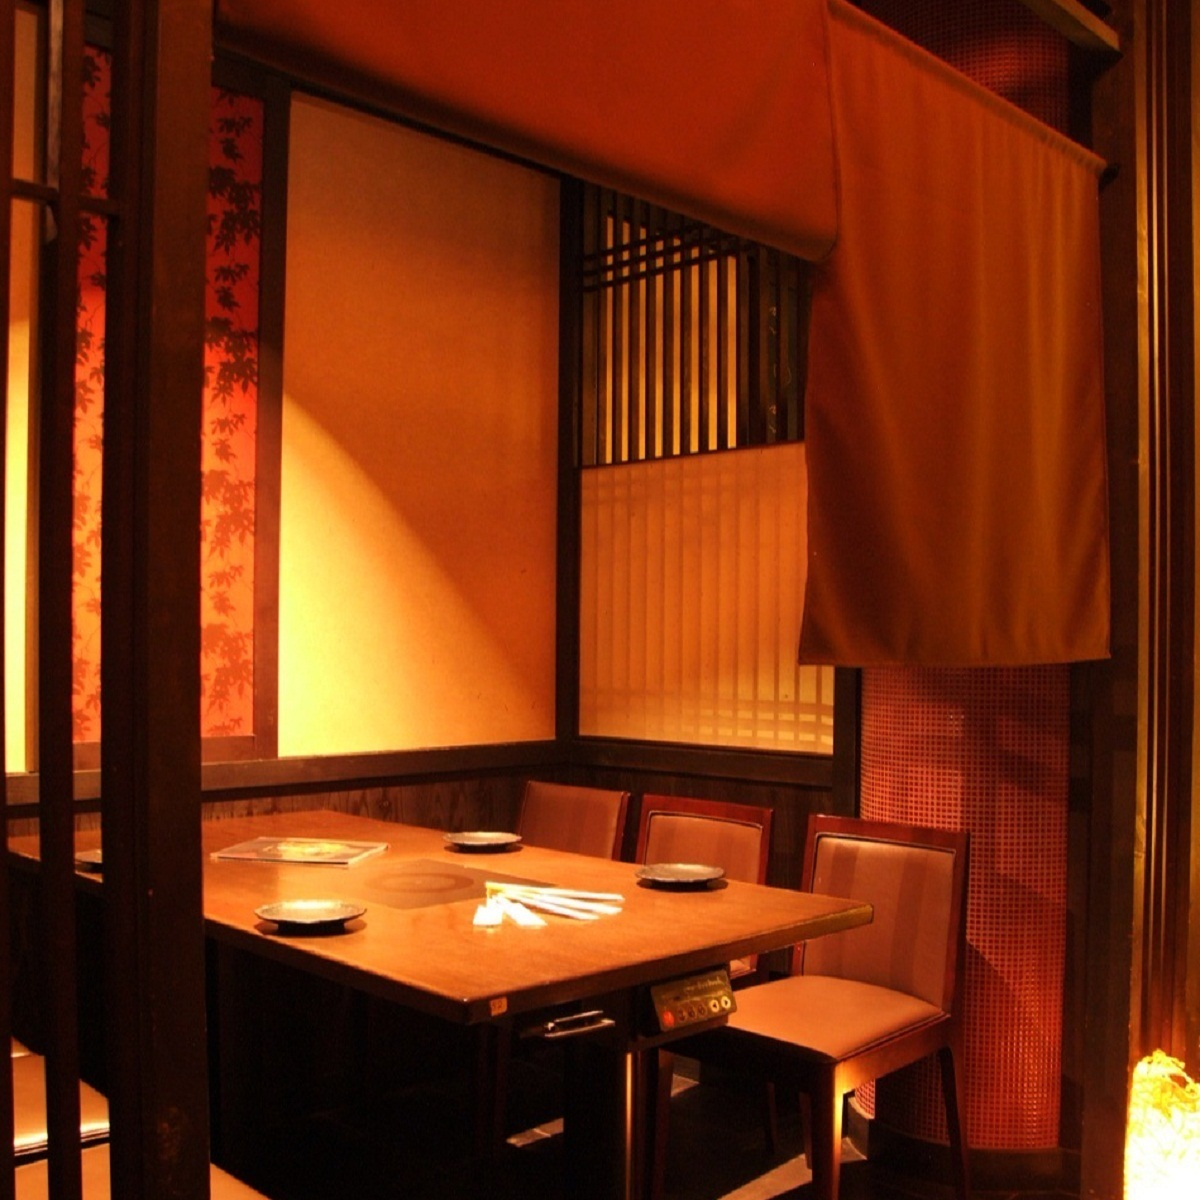 【Table private room】】 It is a table private room where 6 people can sit.You can enjoy your meal in private space without worrying about surroundings.We are waiting for the girls' party, gong, drinking party, various banquet reservations.